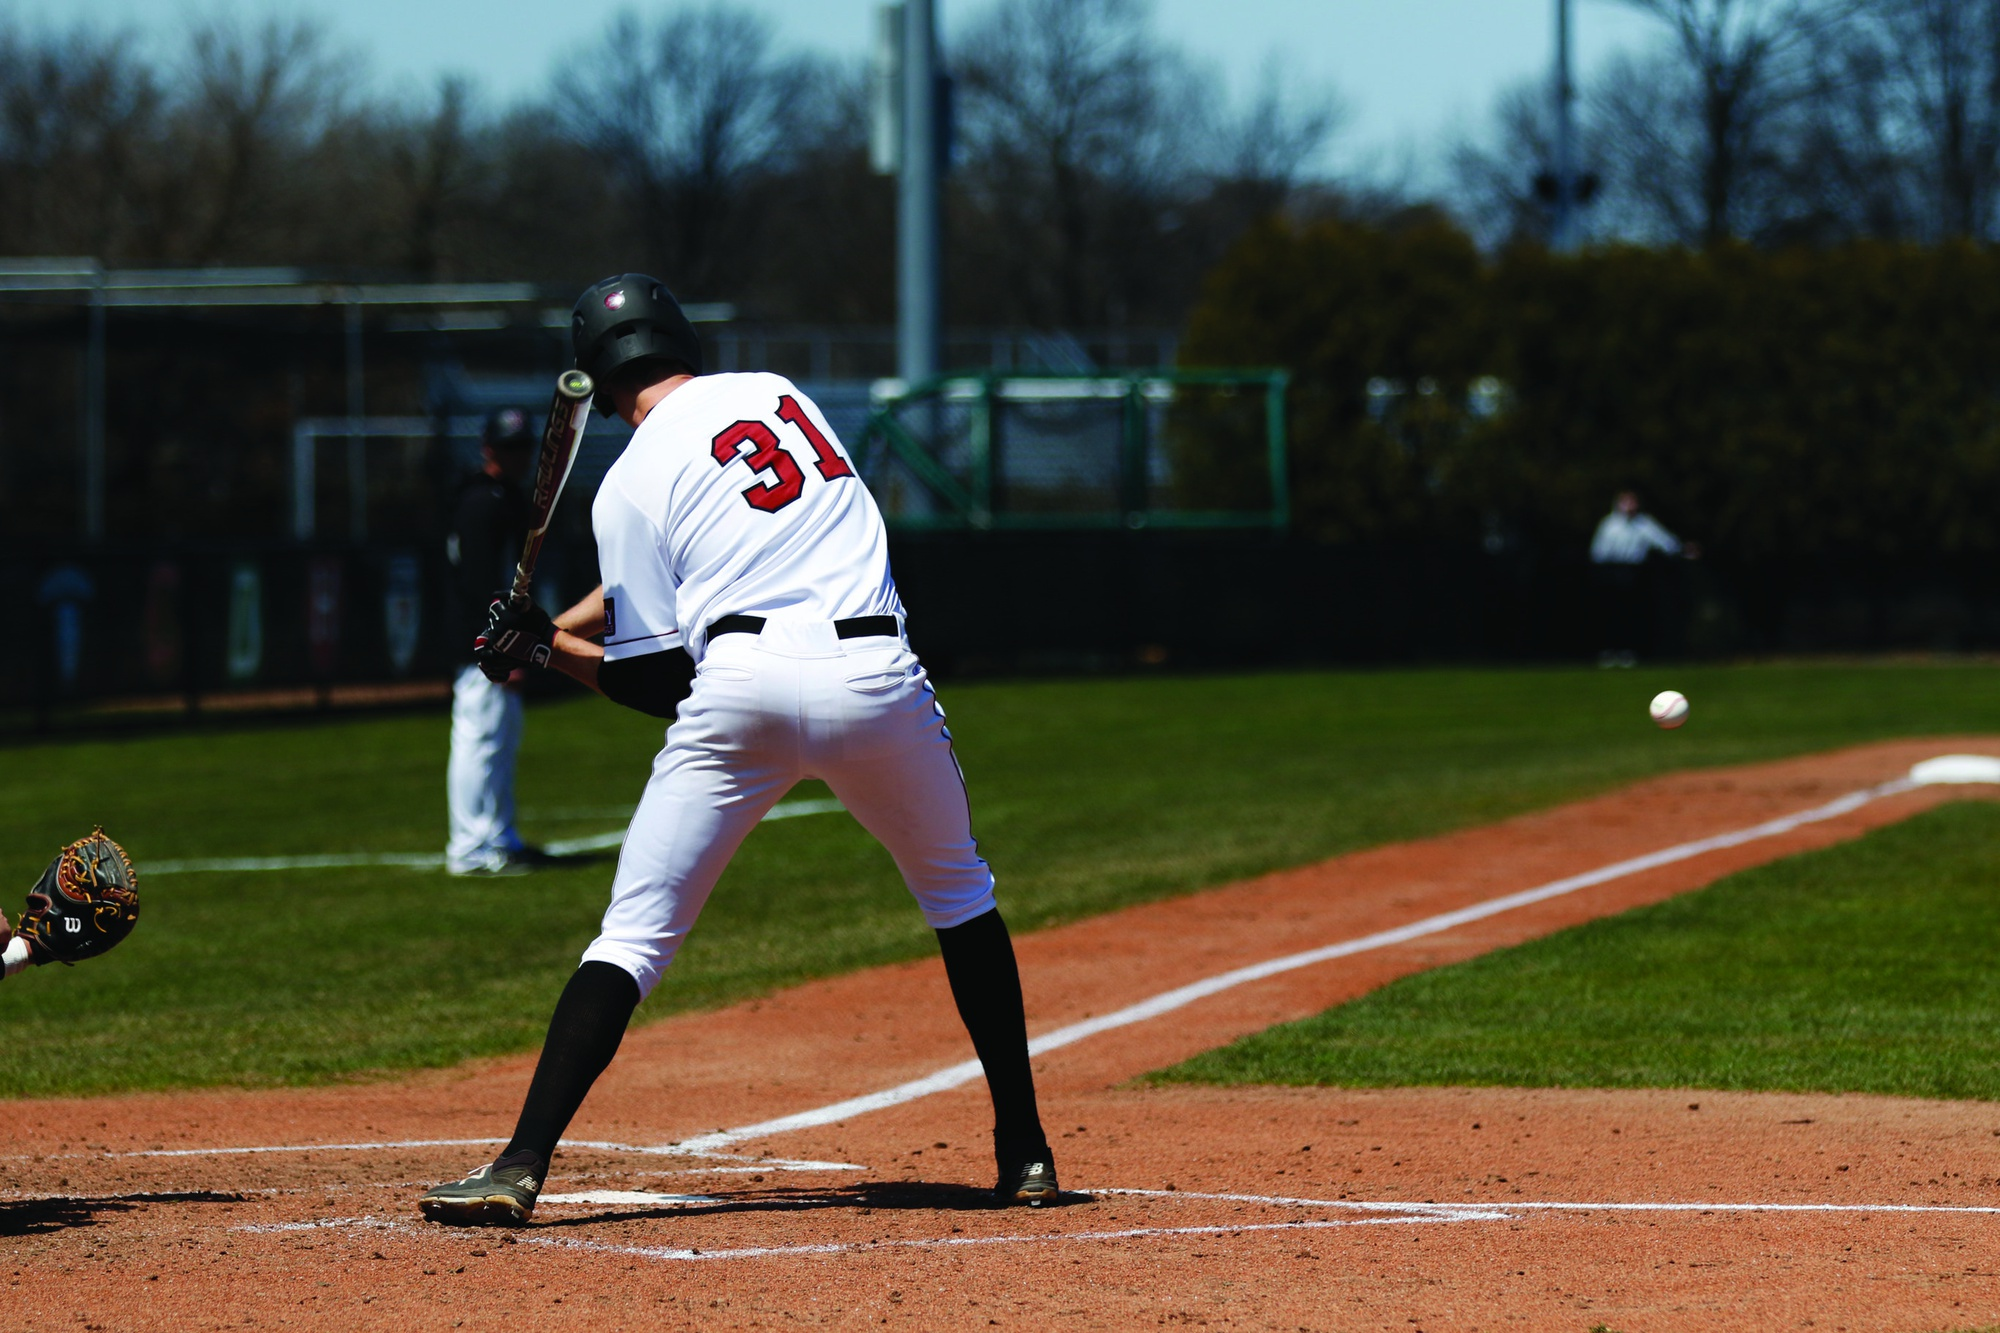 First Baseman Pat McColl and Harvard must swing for the fences and sweep the series to reach the postseason.